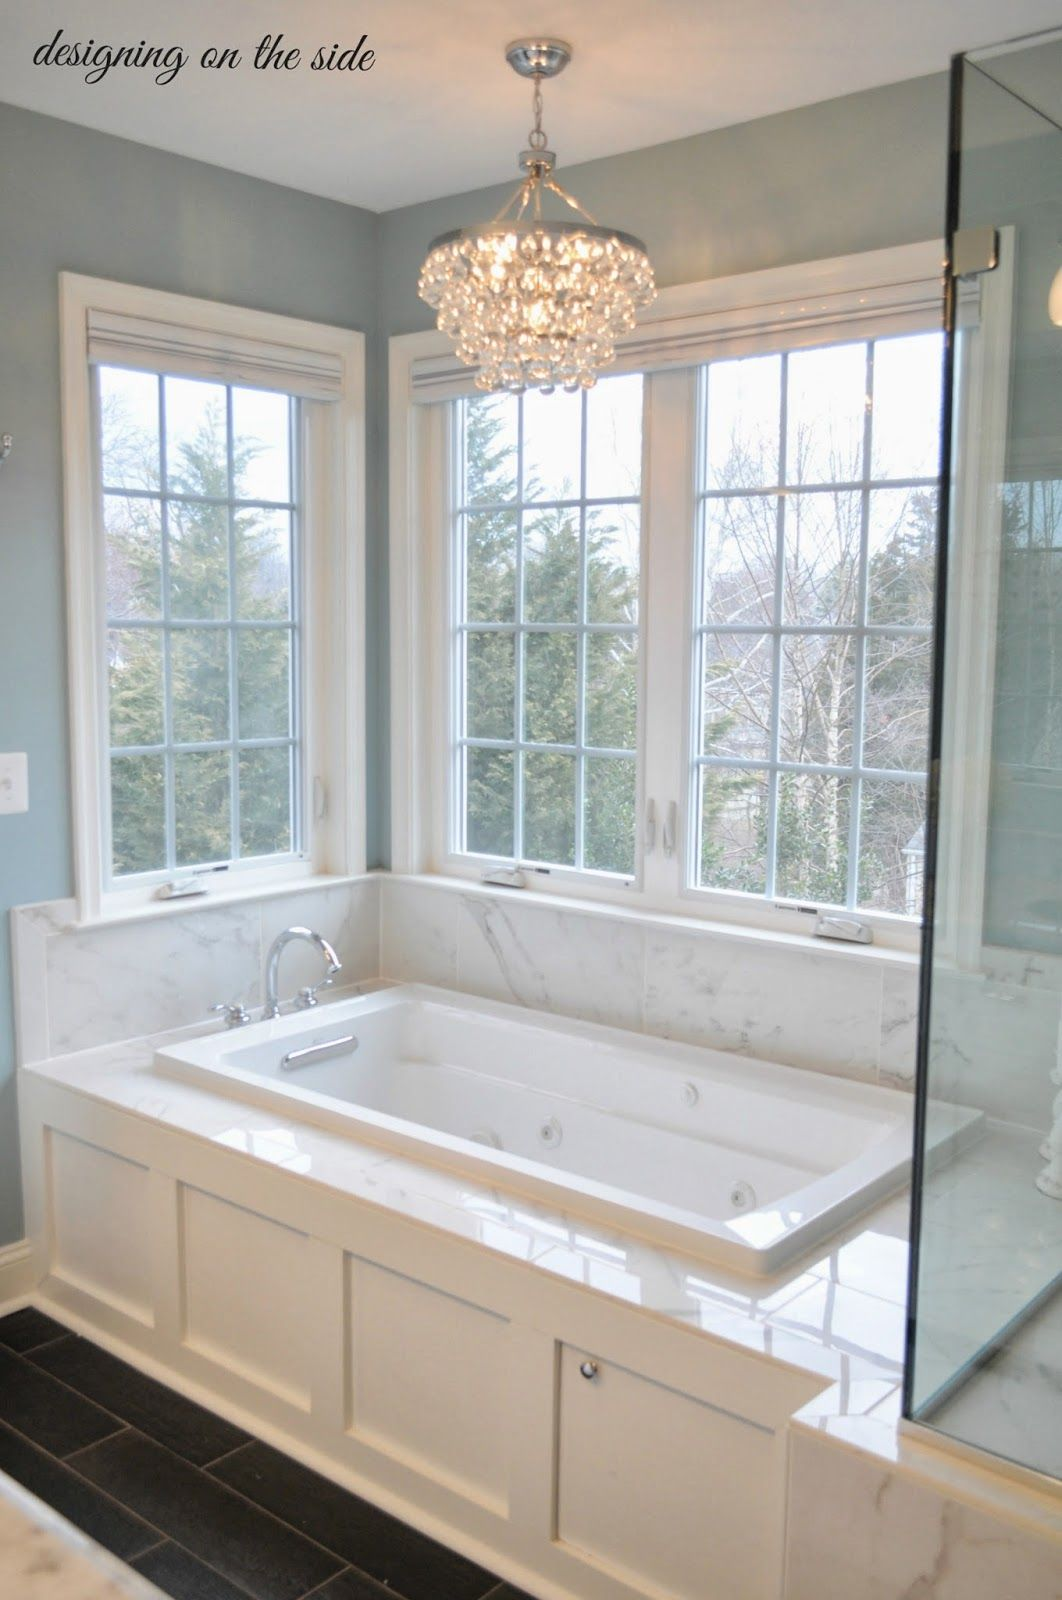 Master Bath Marble Tile Sw Rain Crystal Chandelier That Looks Like Hardwood Wainscoting Tub